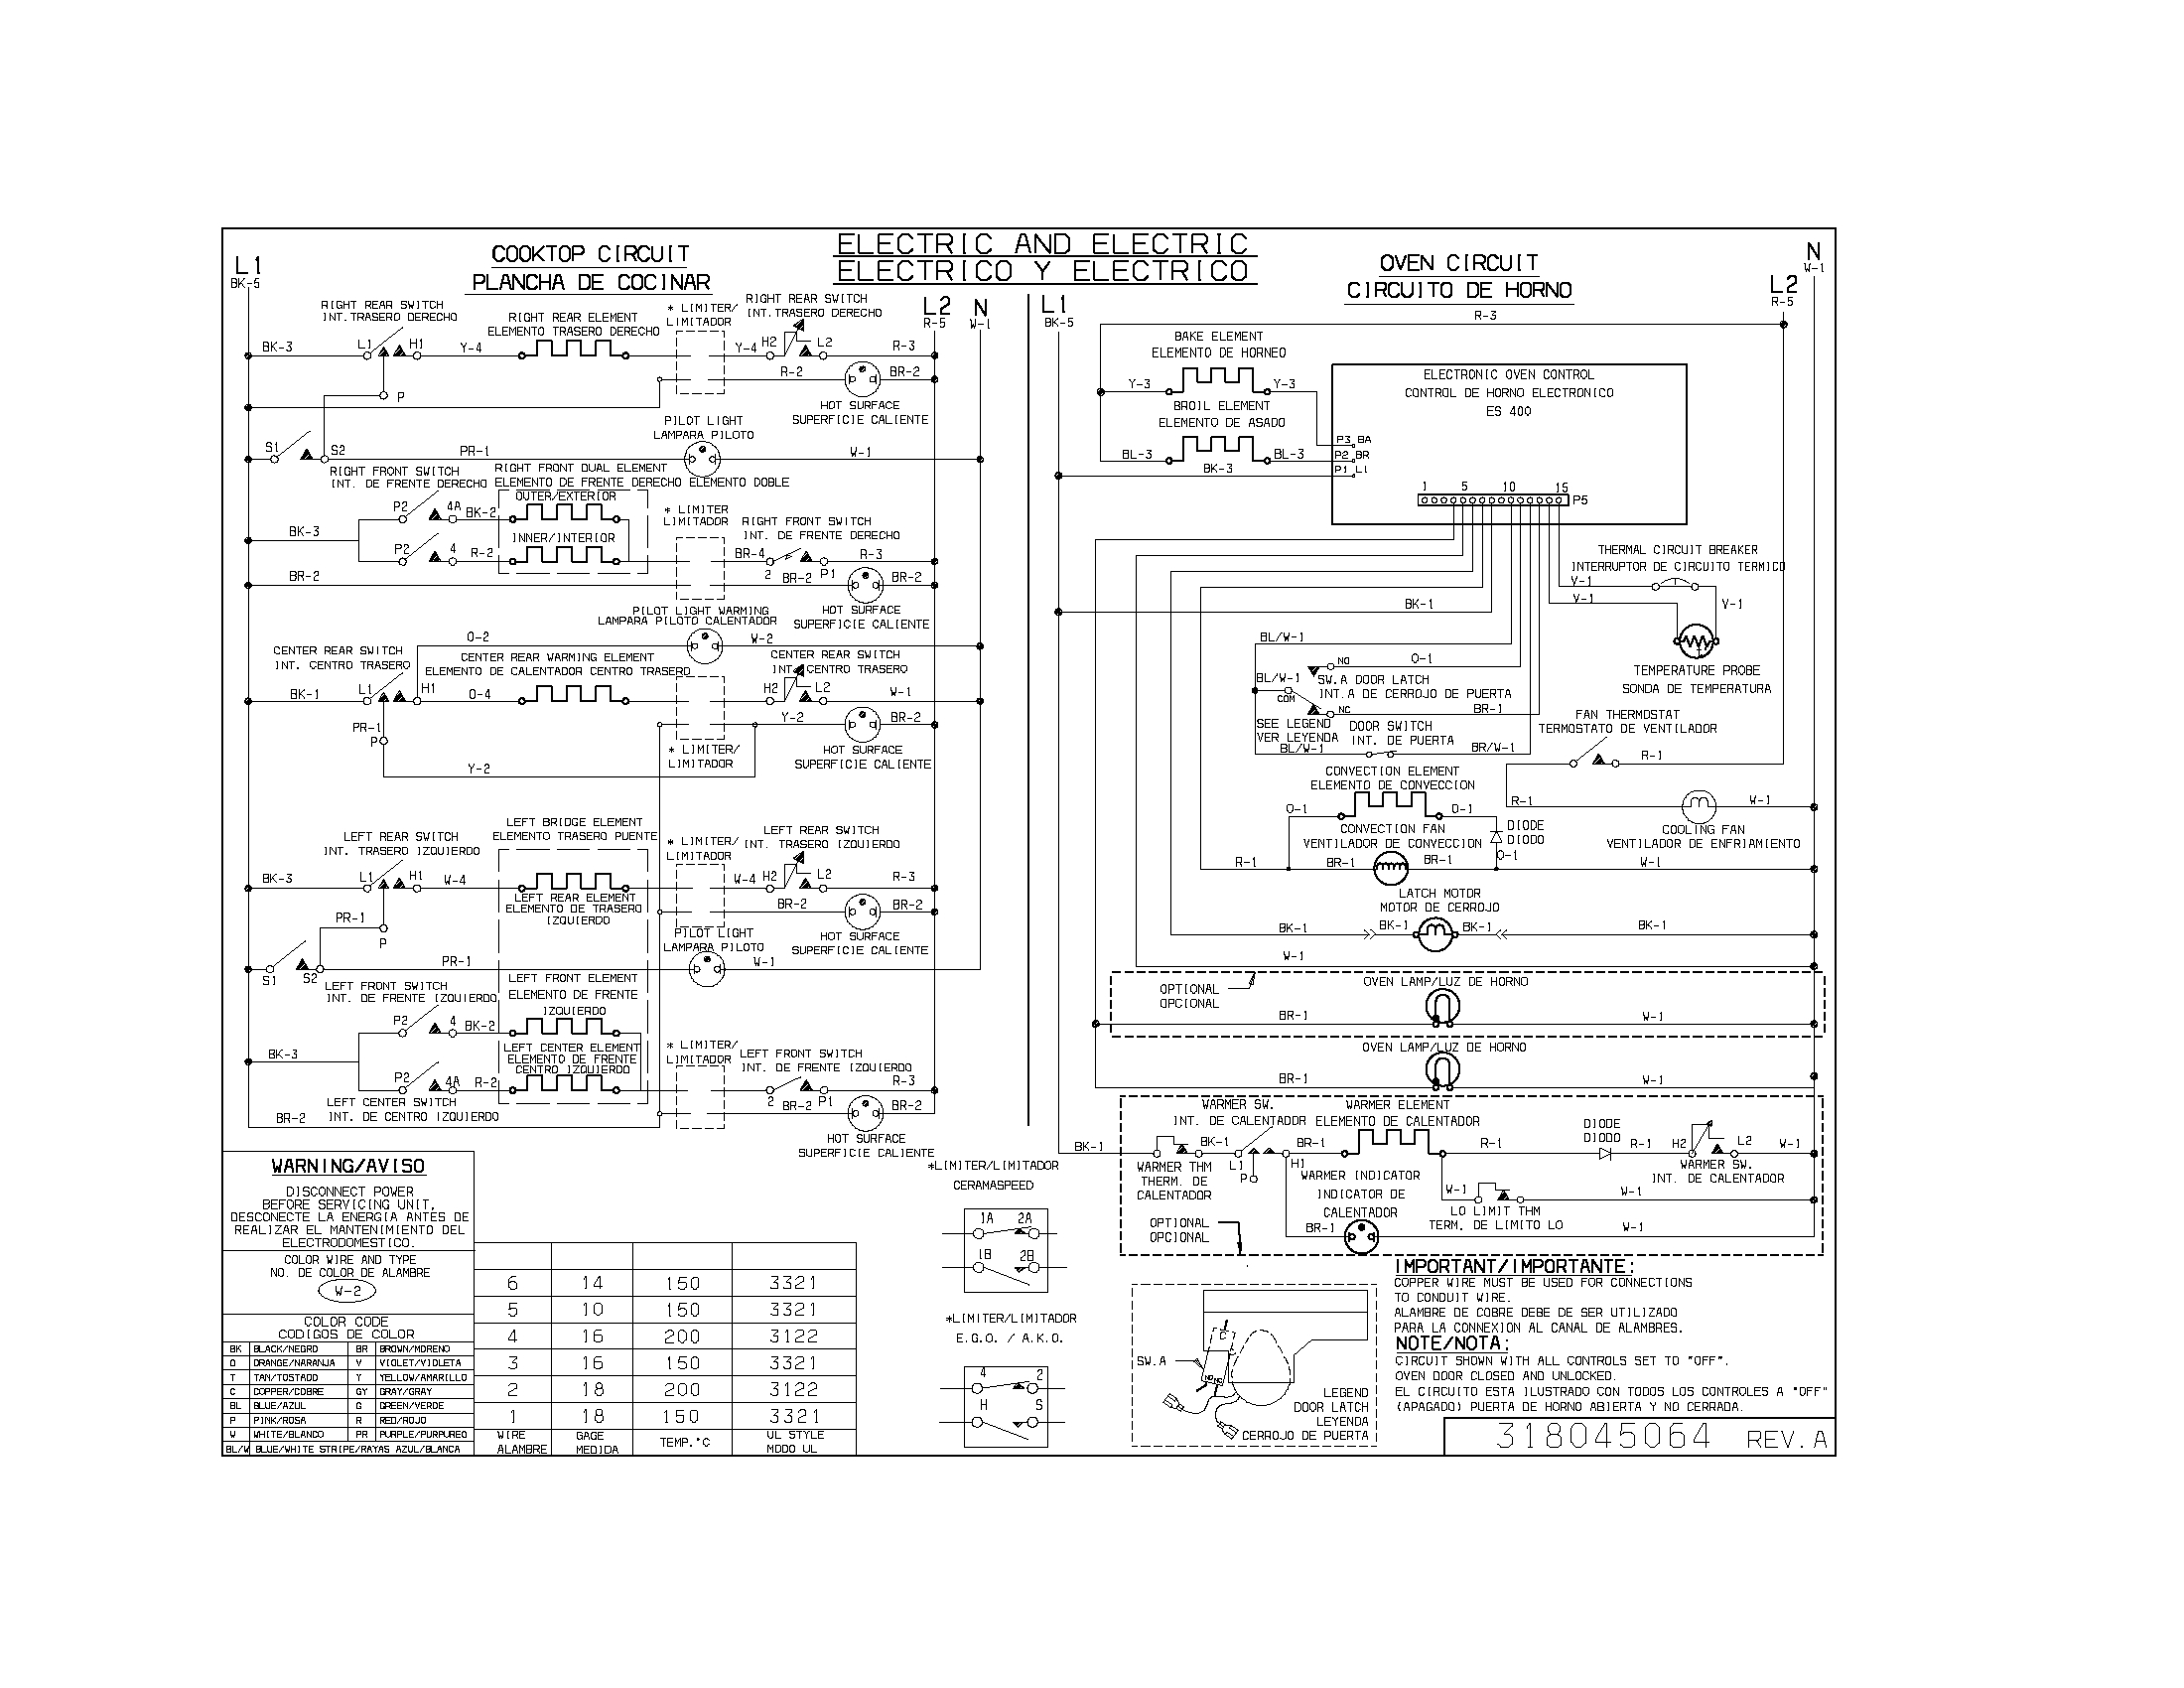 Sunfire Sdg 1 Wiring Diagram 28 Images Electric Step Power U2022 Kenmore Dishwasher To Parts In 90 Series Dryer